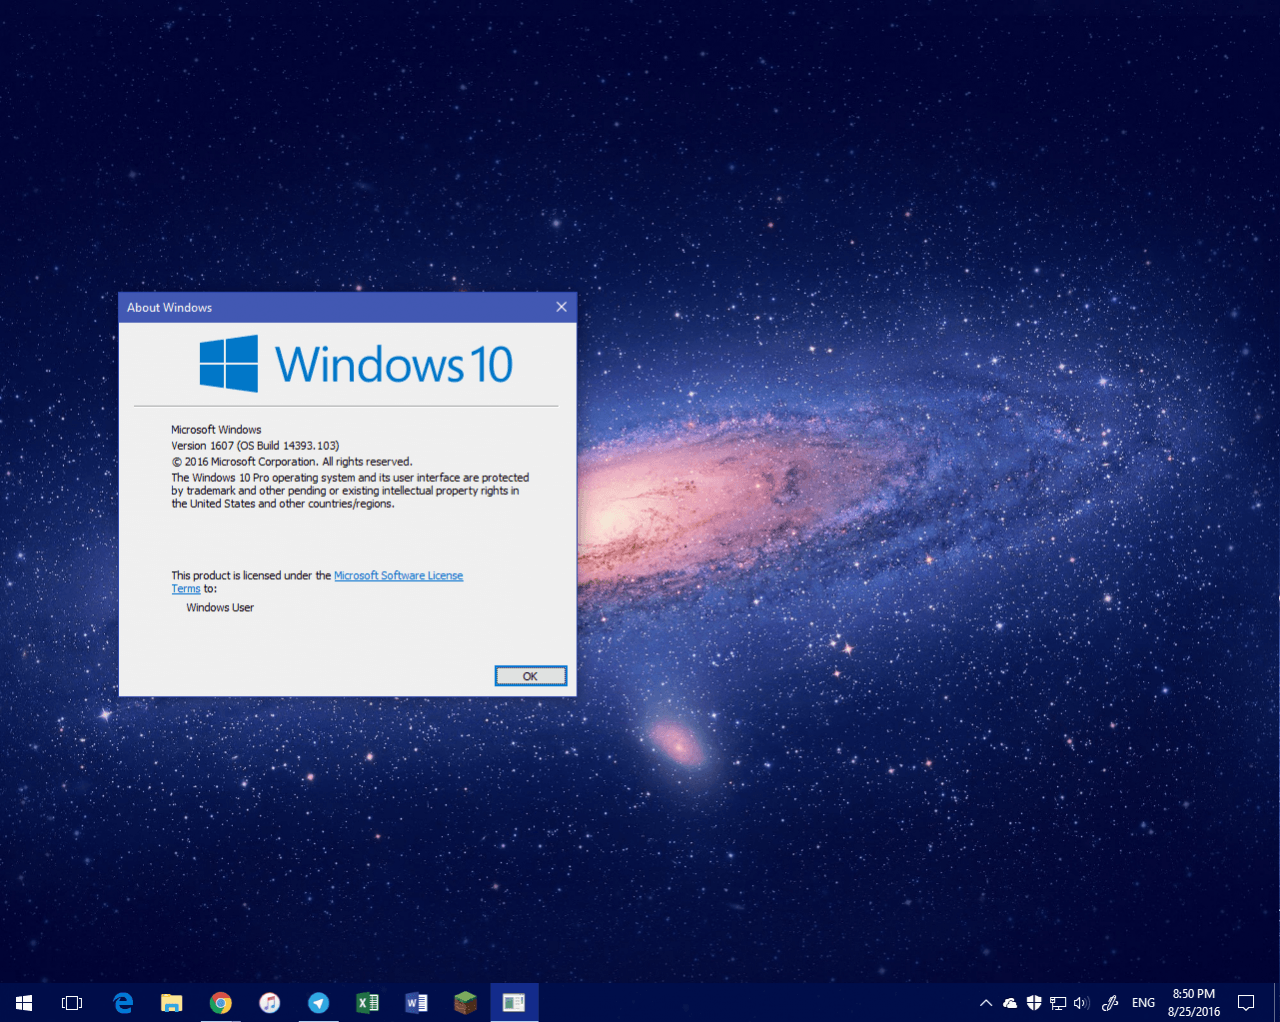 Windows 10 Release Preview 14393.103